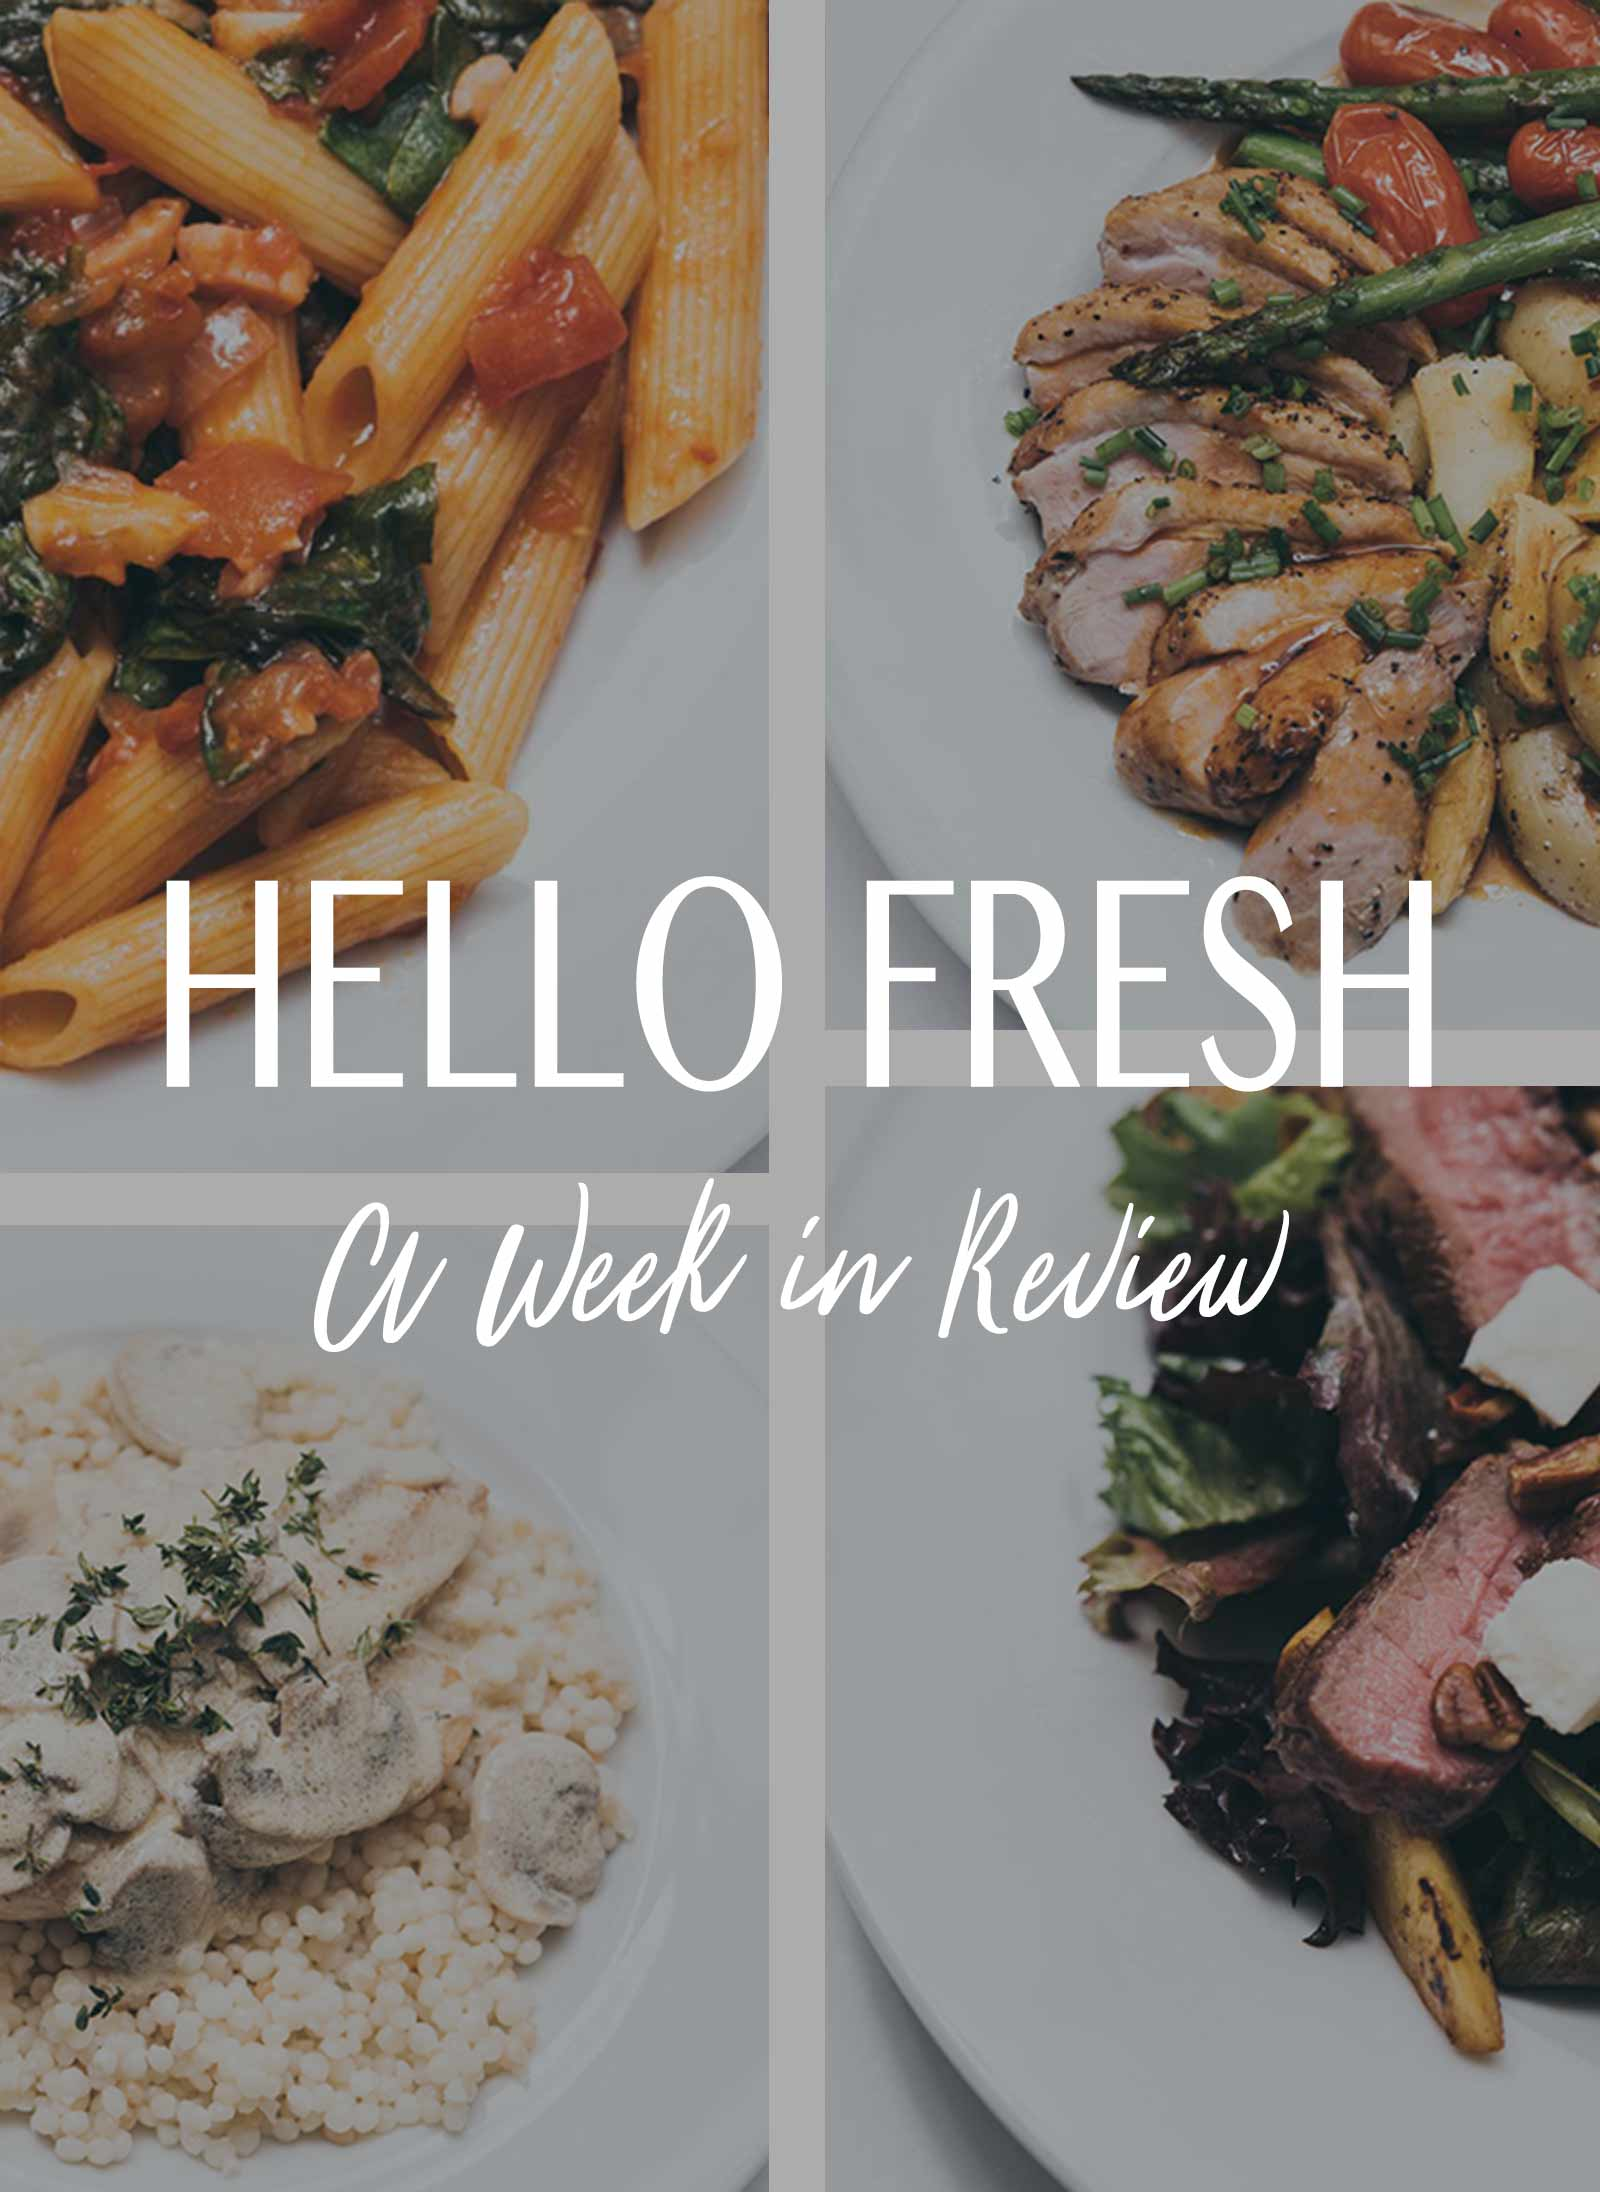 Cheap Hellofresh Meal Kit Delivery Service  Price At Release